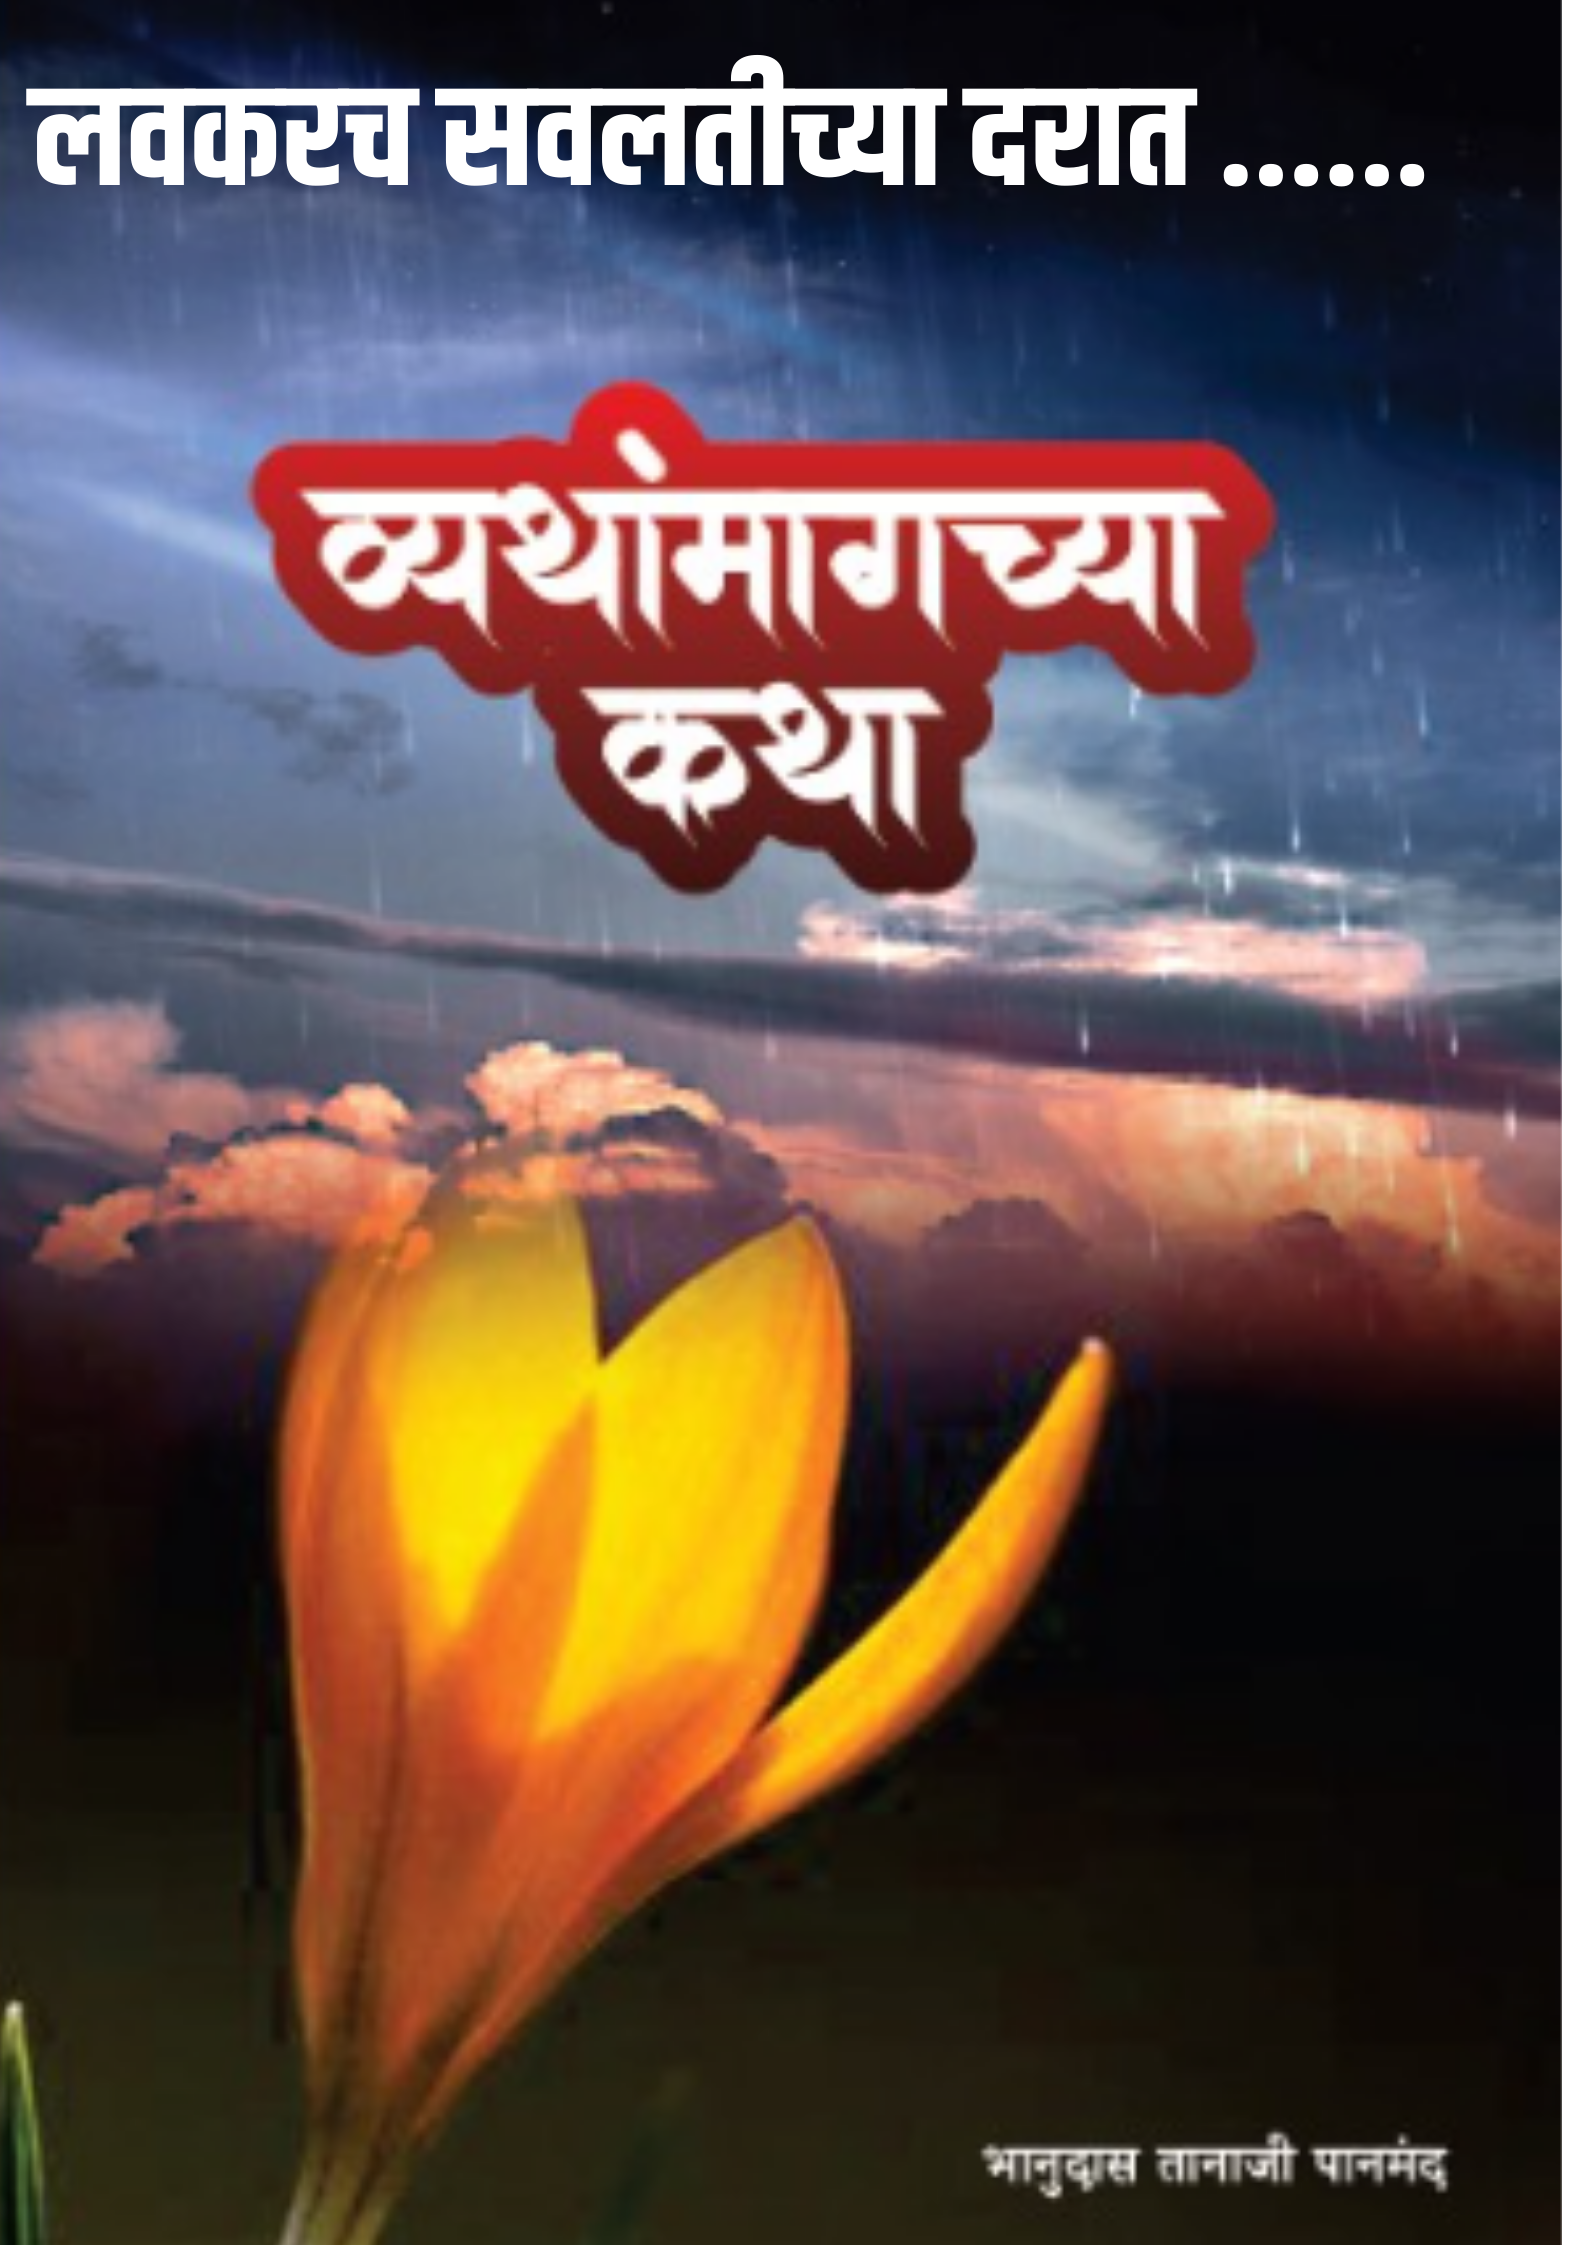 stories for book review, short stories in marathi pdf, best marathi books to read, best motivational books to read in marathi, love story book in marathi